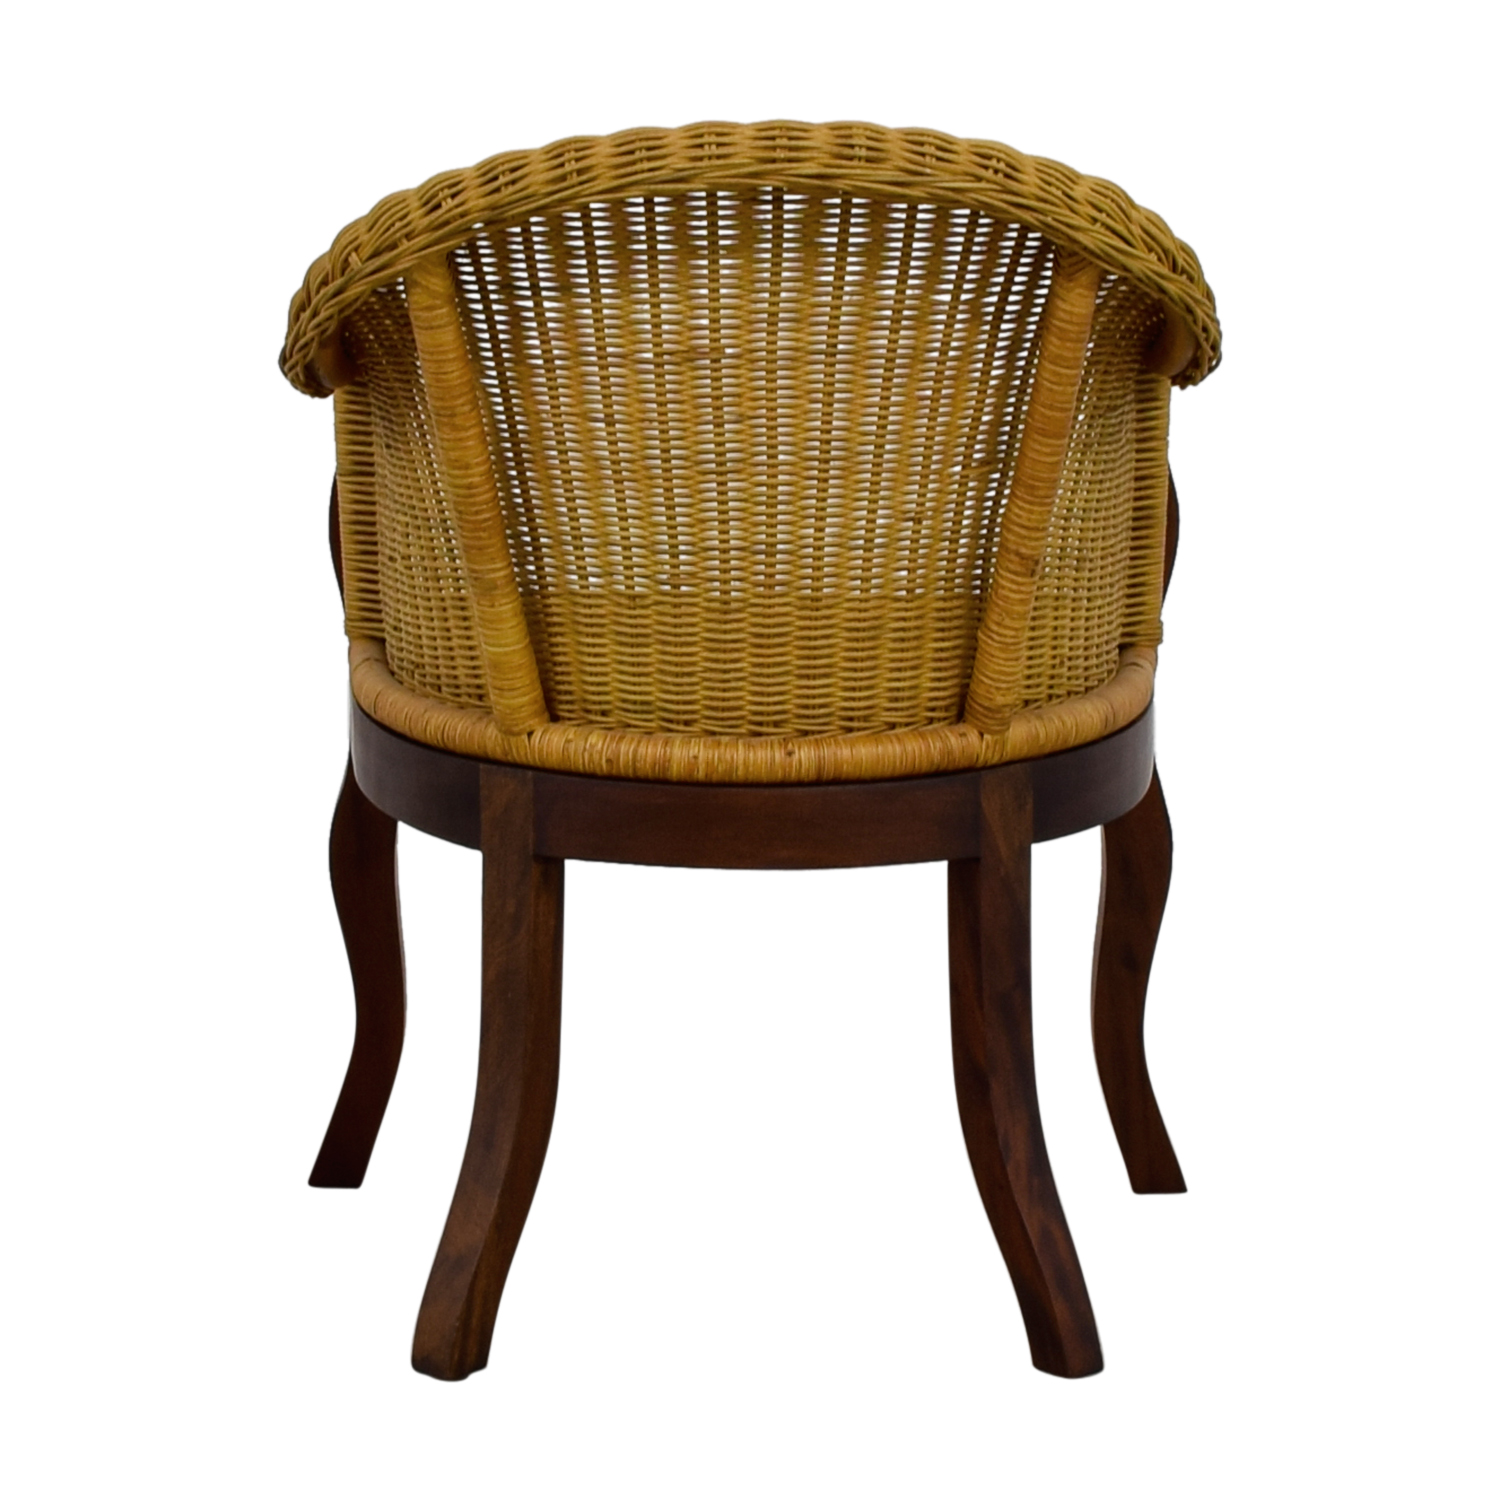 Wicker and Wood Accent Chair second hand